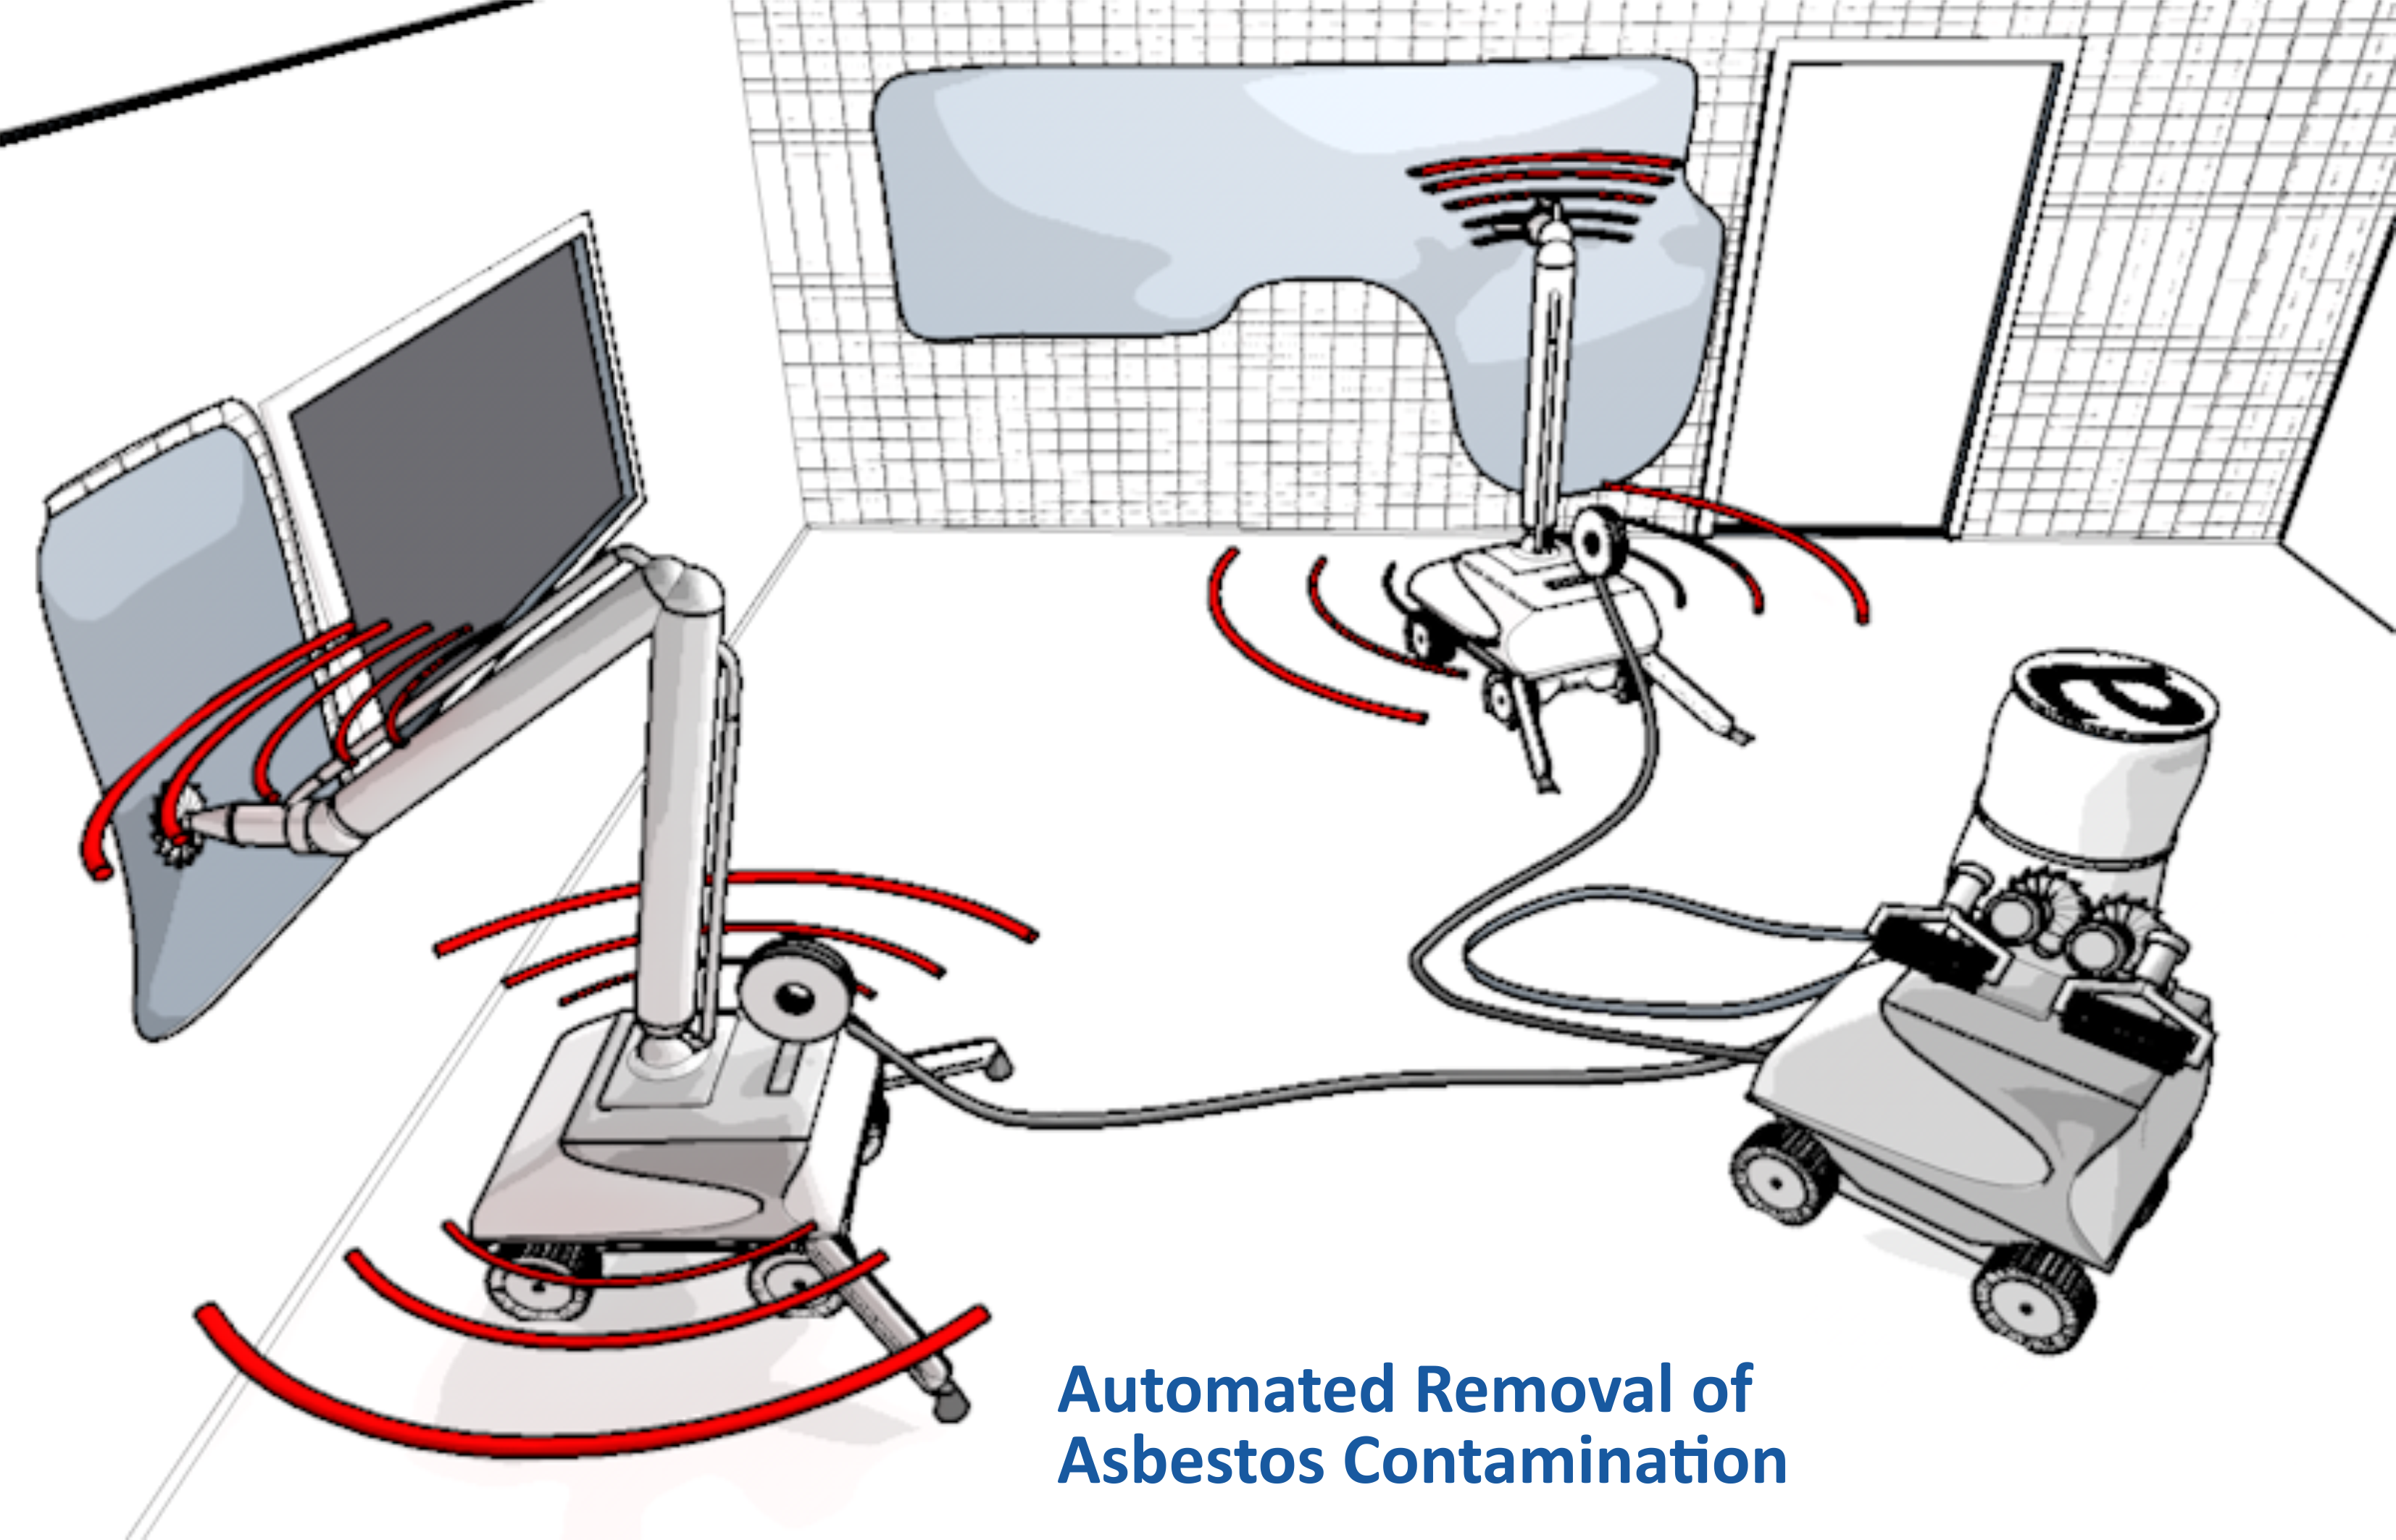 Automated Removal